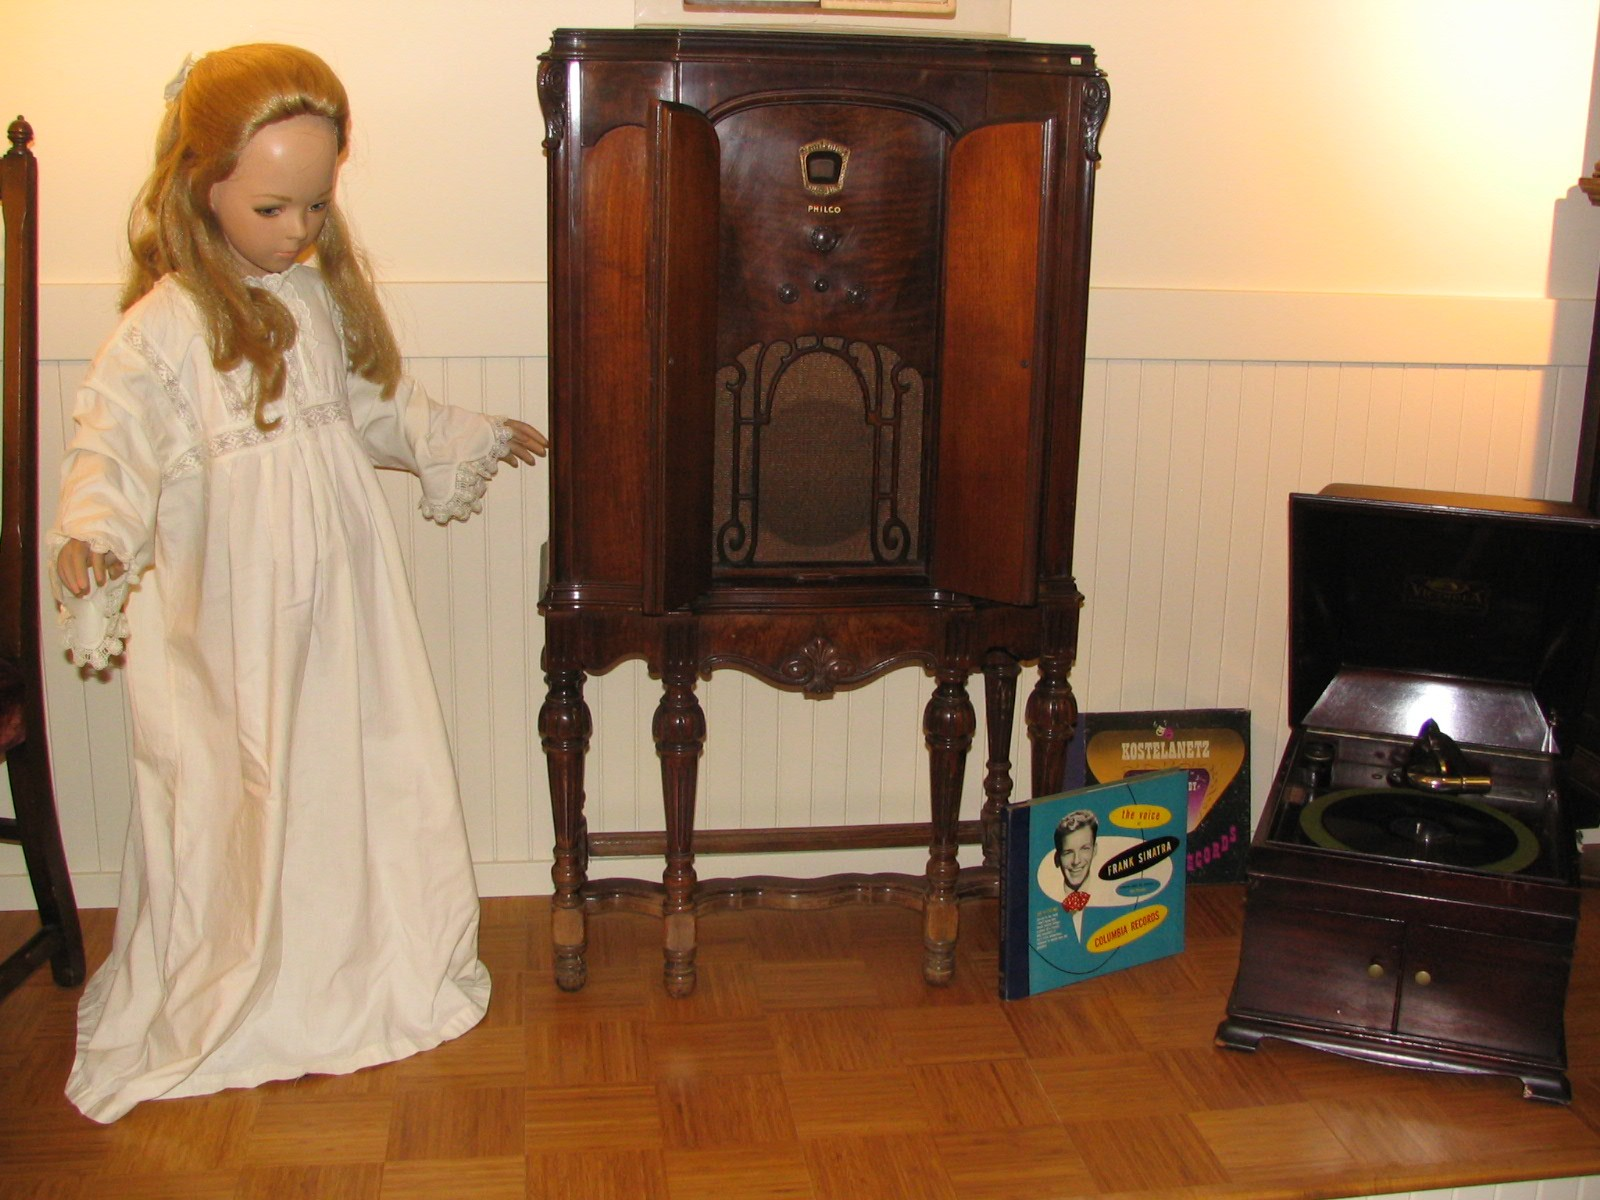 Heritage_Room_Girl_and_Record_PLayer.jpg